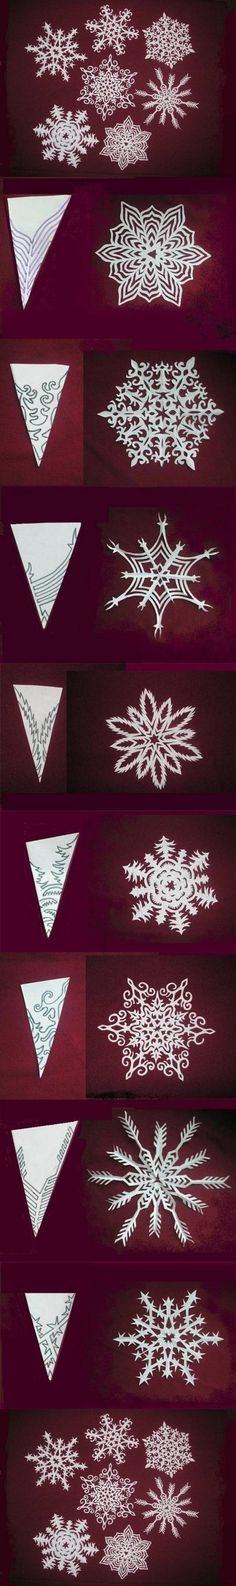 How to make beautiful Snowflakes Paper craft tutorial instructions